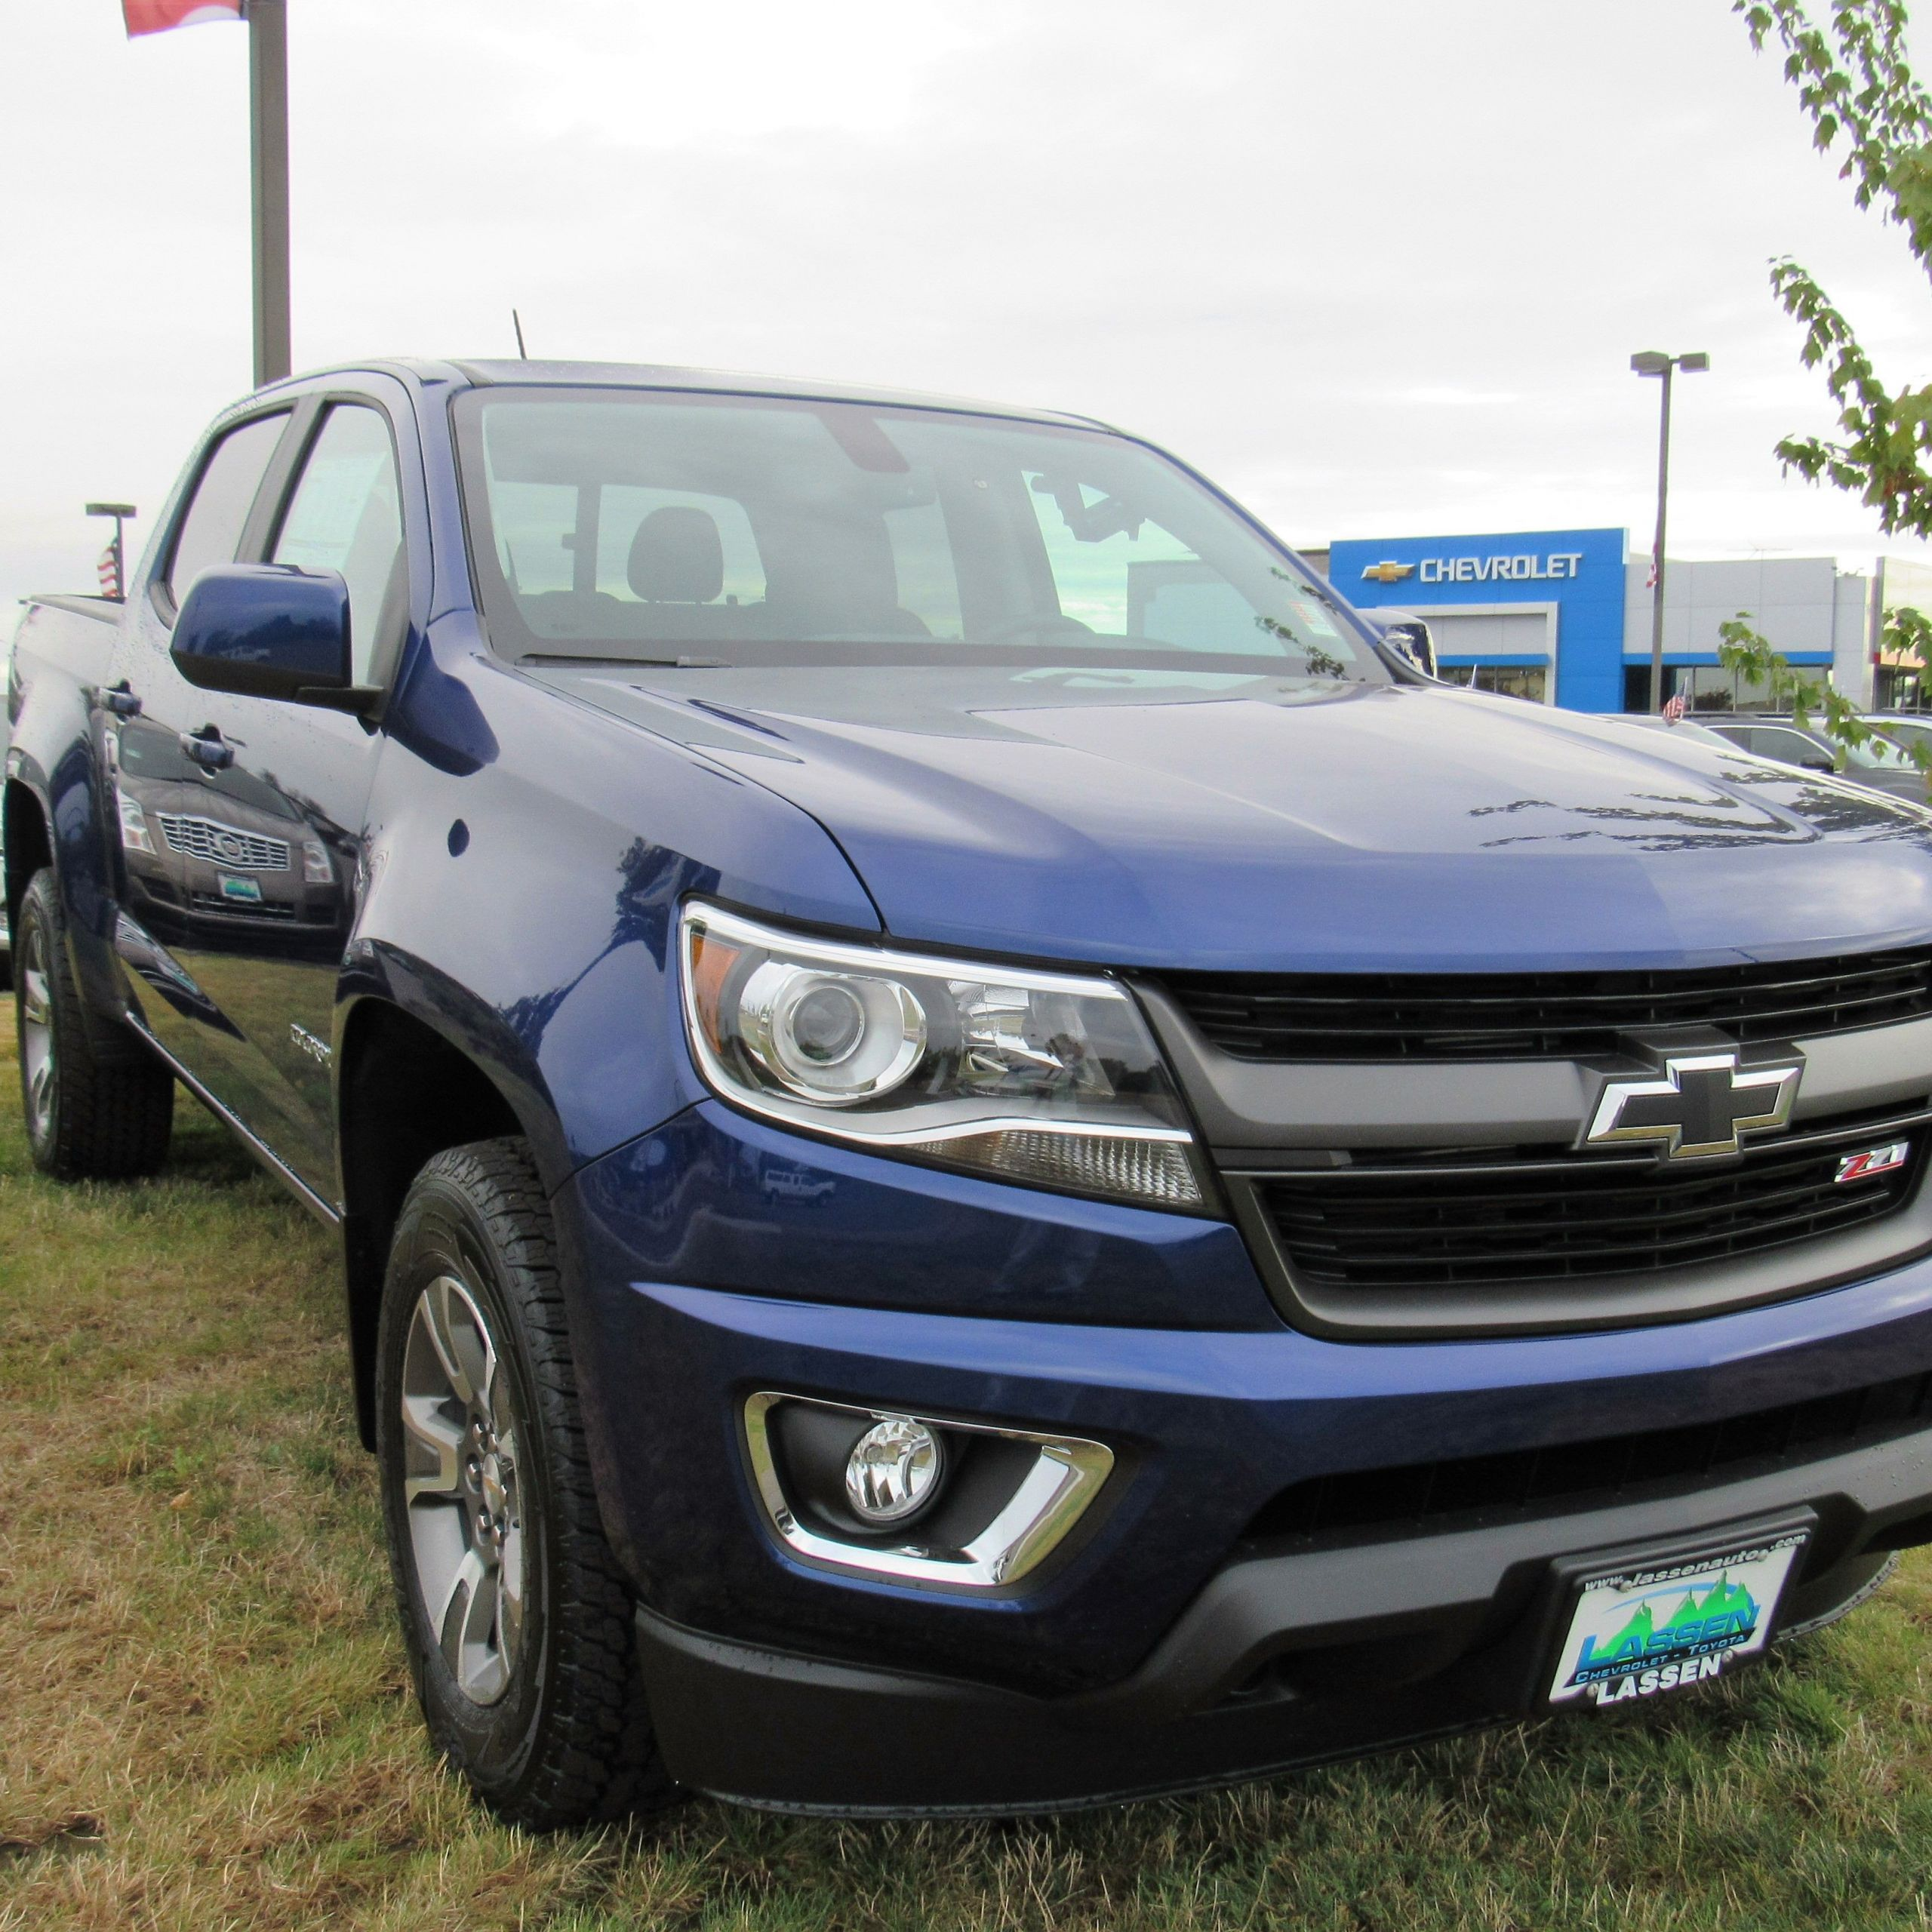 09 Chevy Colorado Beautiful 151 Best Chevrolet Images